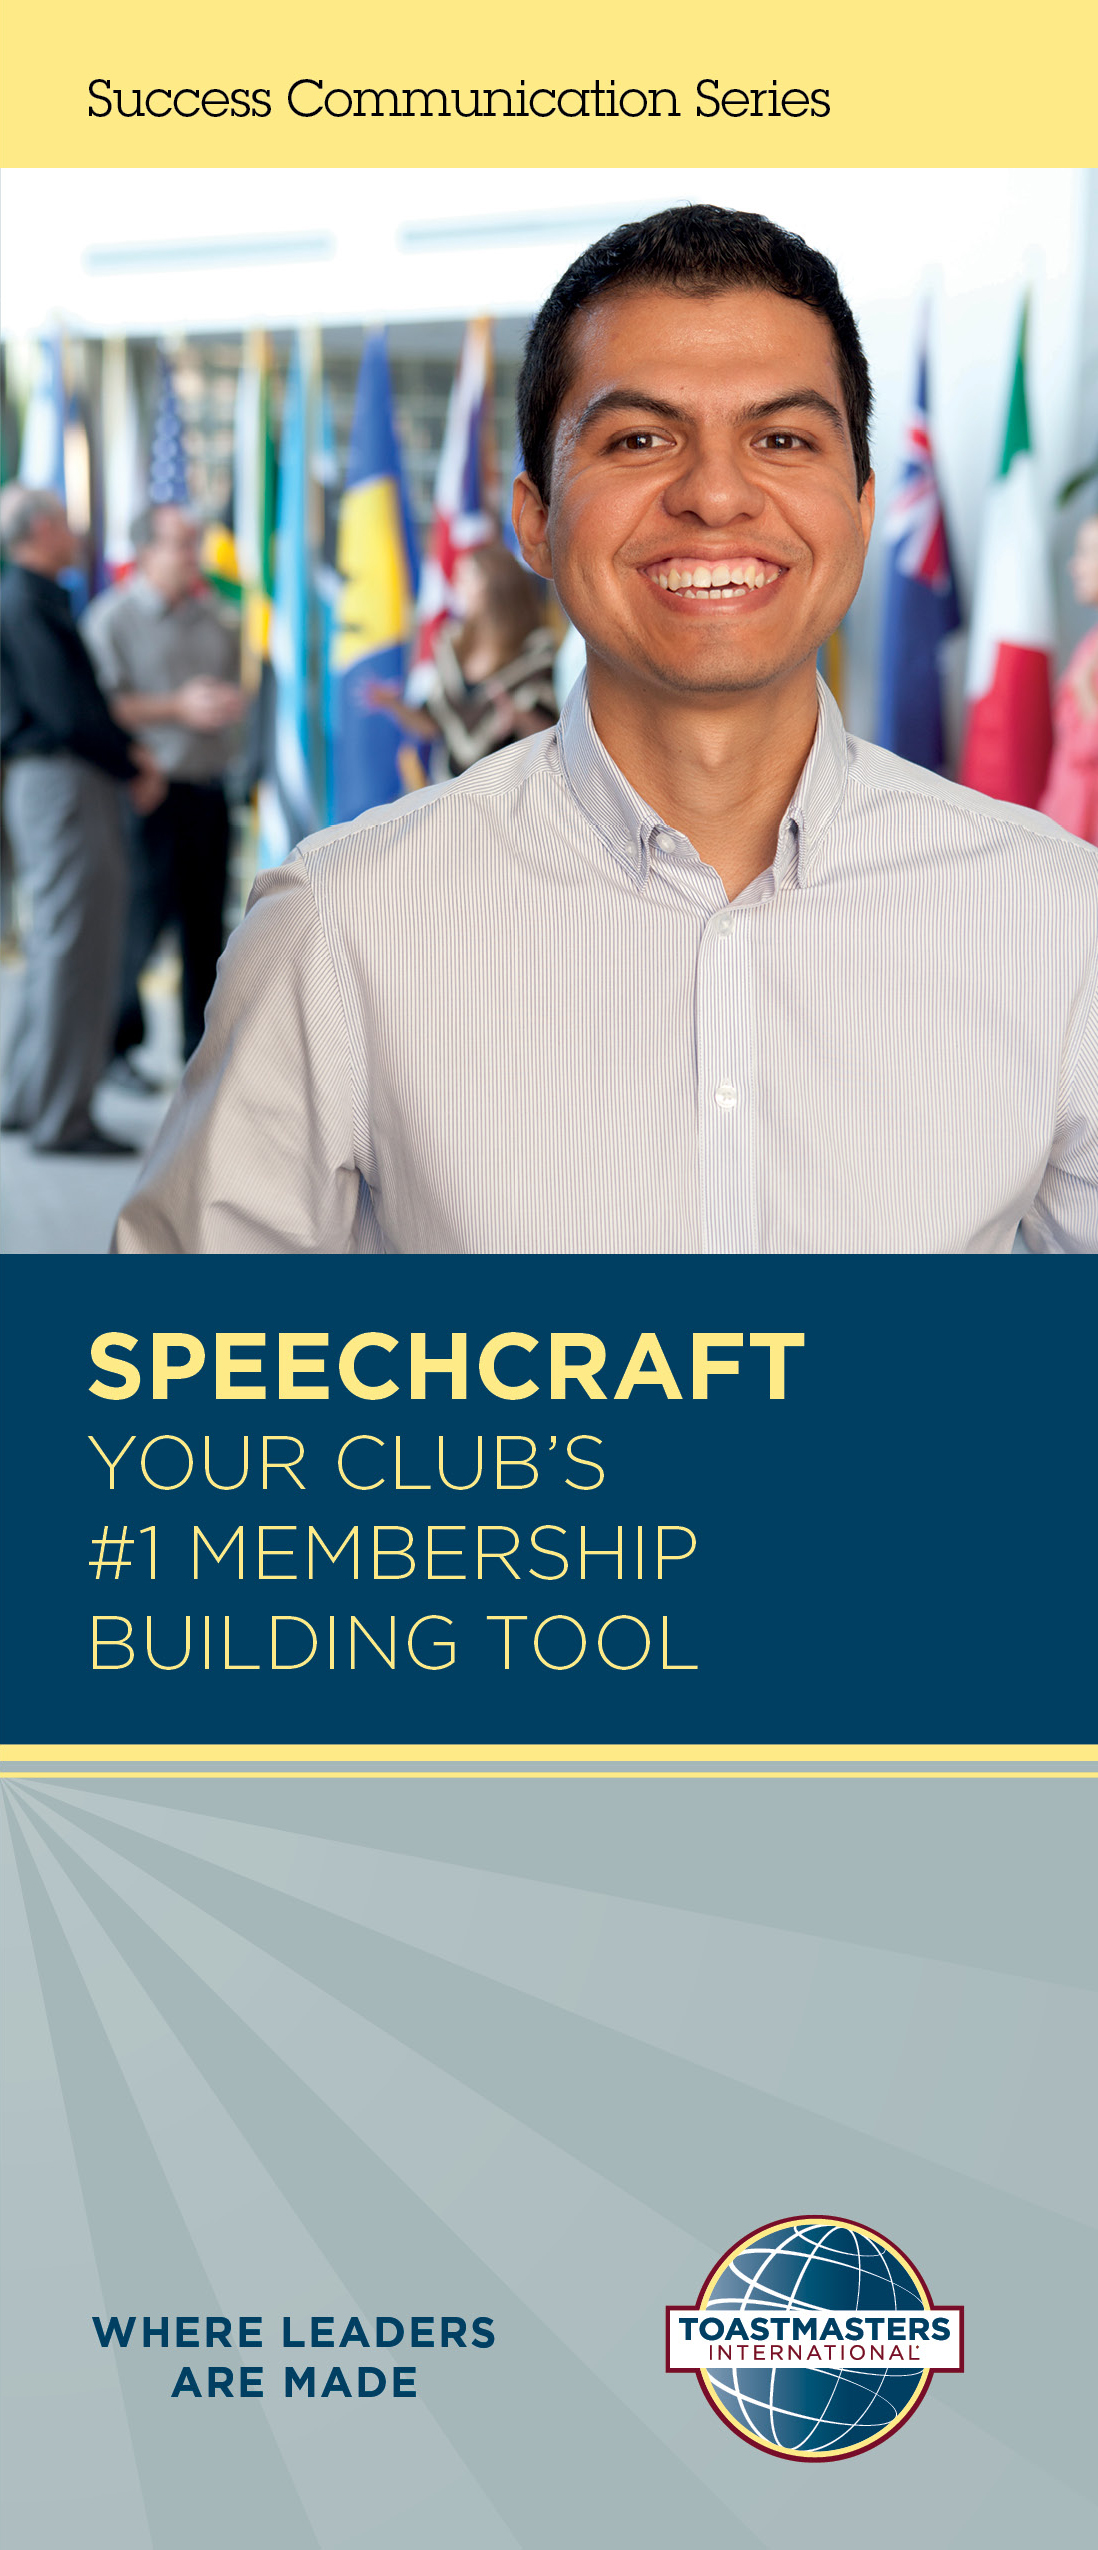 Your Club's #1 Membership Building Tool